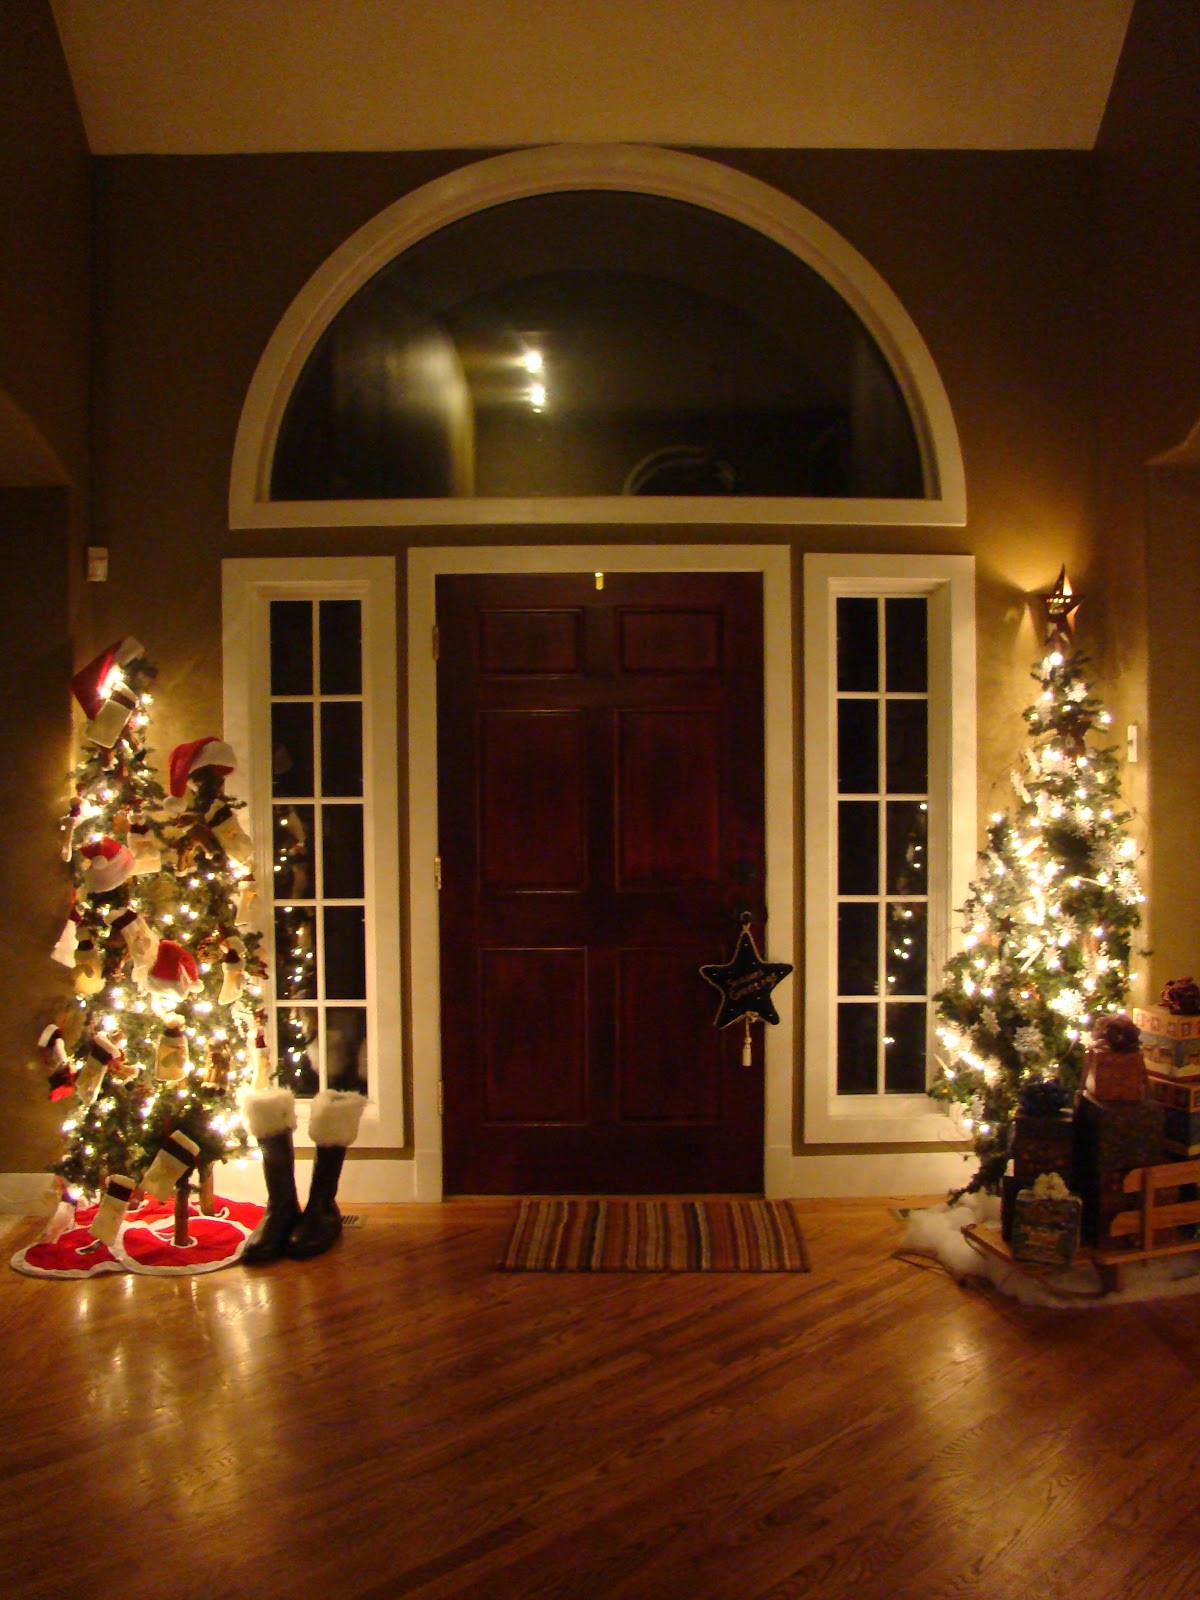 Best ideas about Entryway Christmas Tree . Save or Pin meibimusings Christmas Decorations Entryway Now.